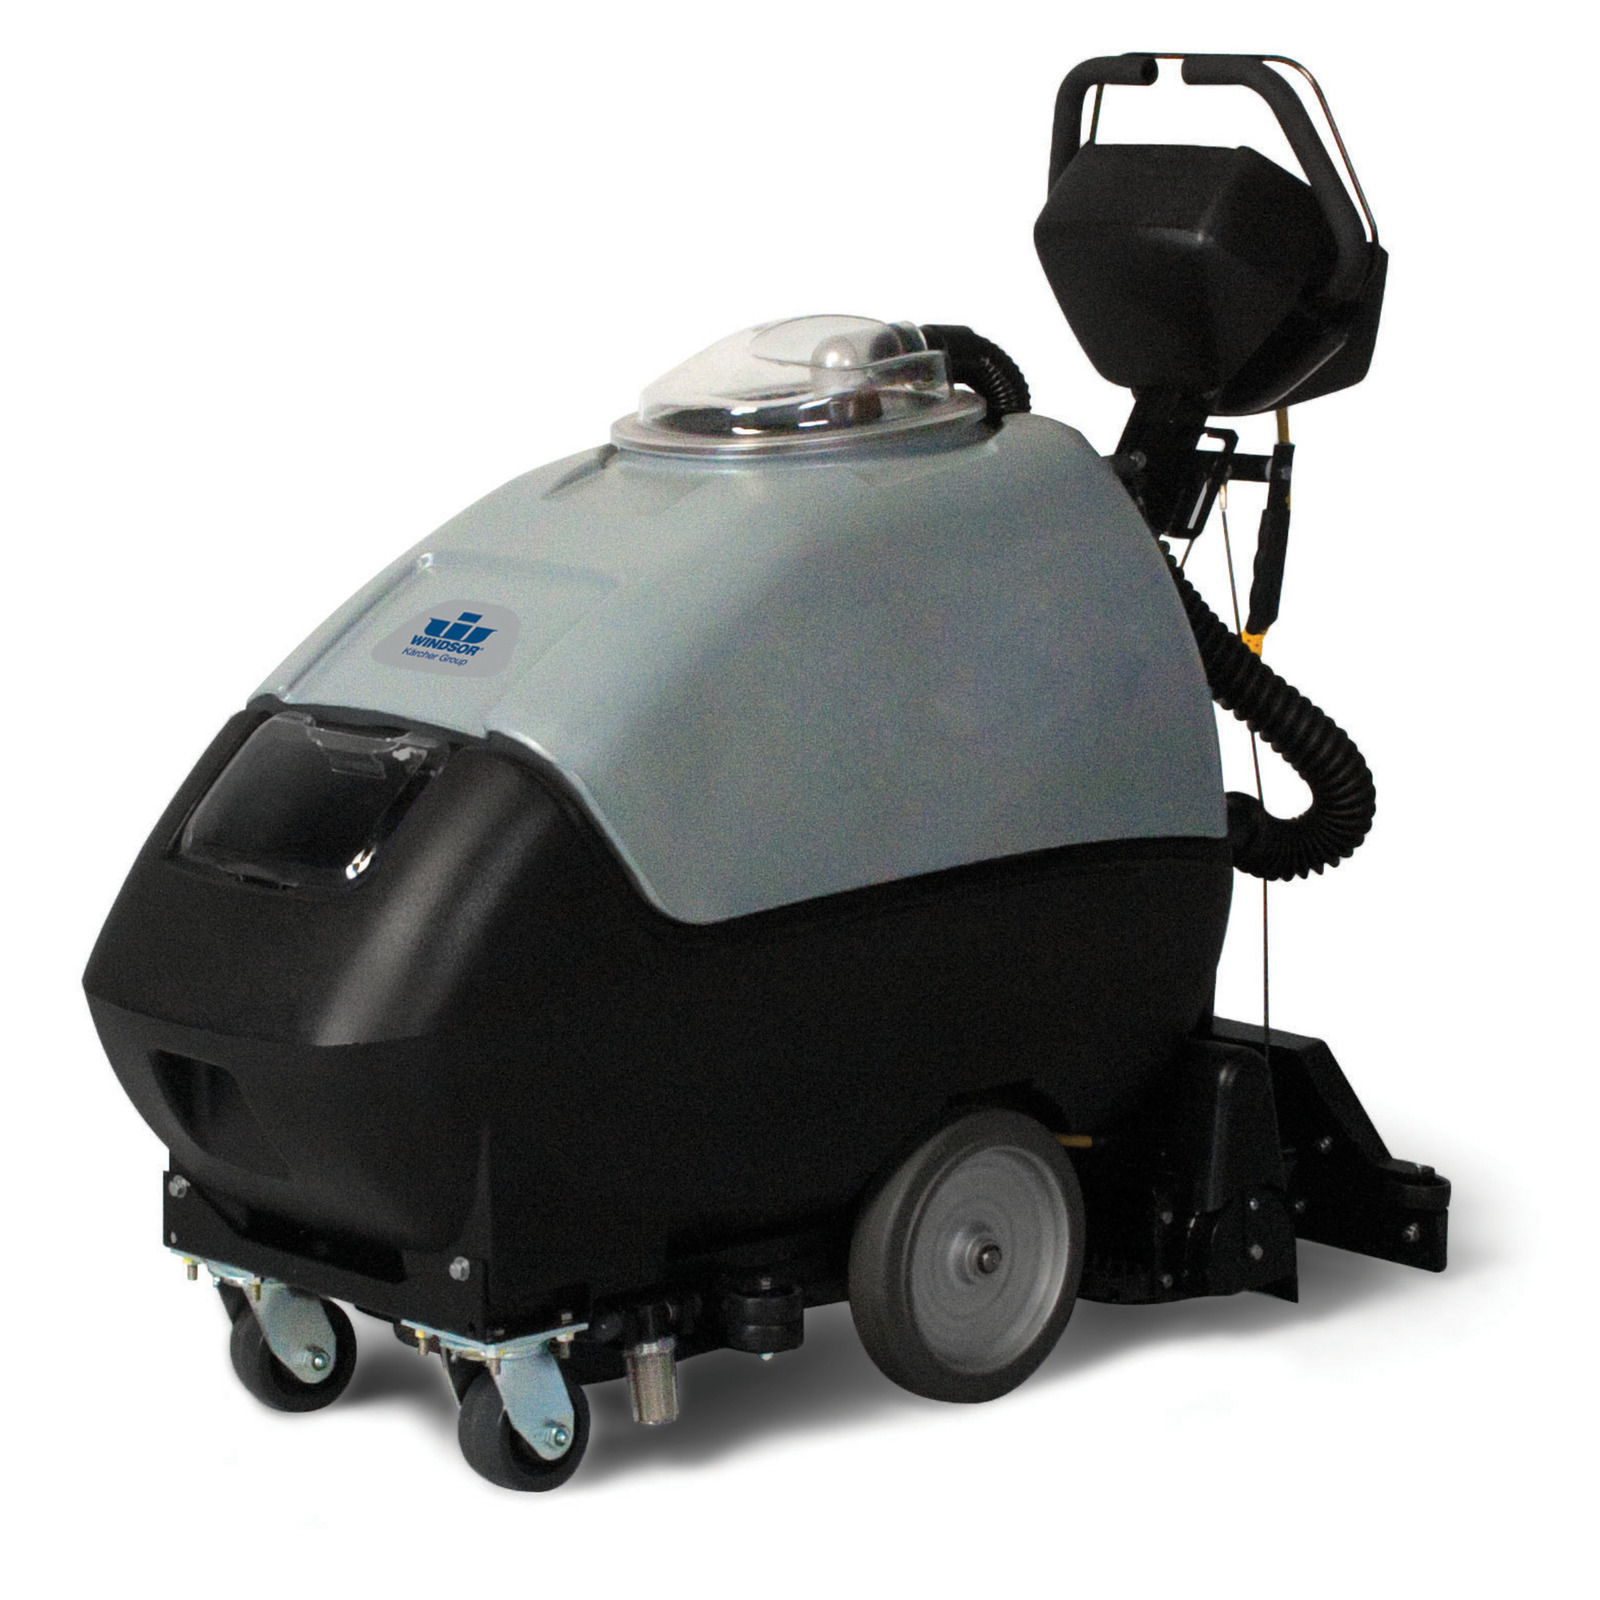 Windsor Commodore 20 Self Contained Walk Behind Carpet Cleaning Machine 1.008-605.0 Self Propelled FREE Shipping Karcher BRC 46/76 W 1.008-650.0  AirX80